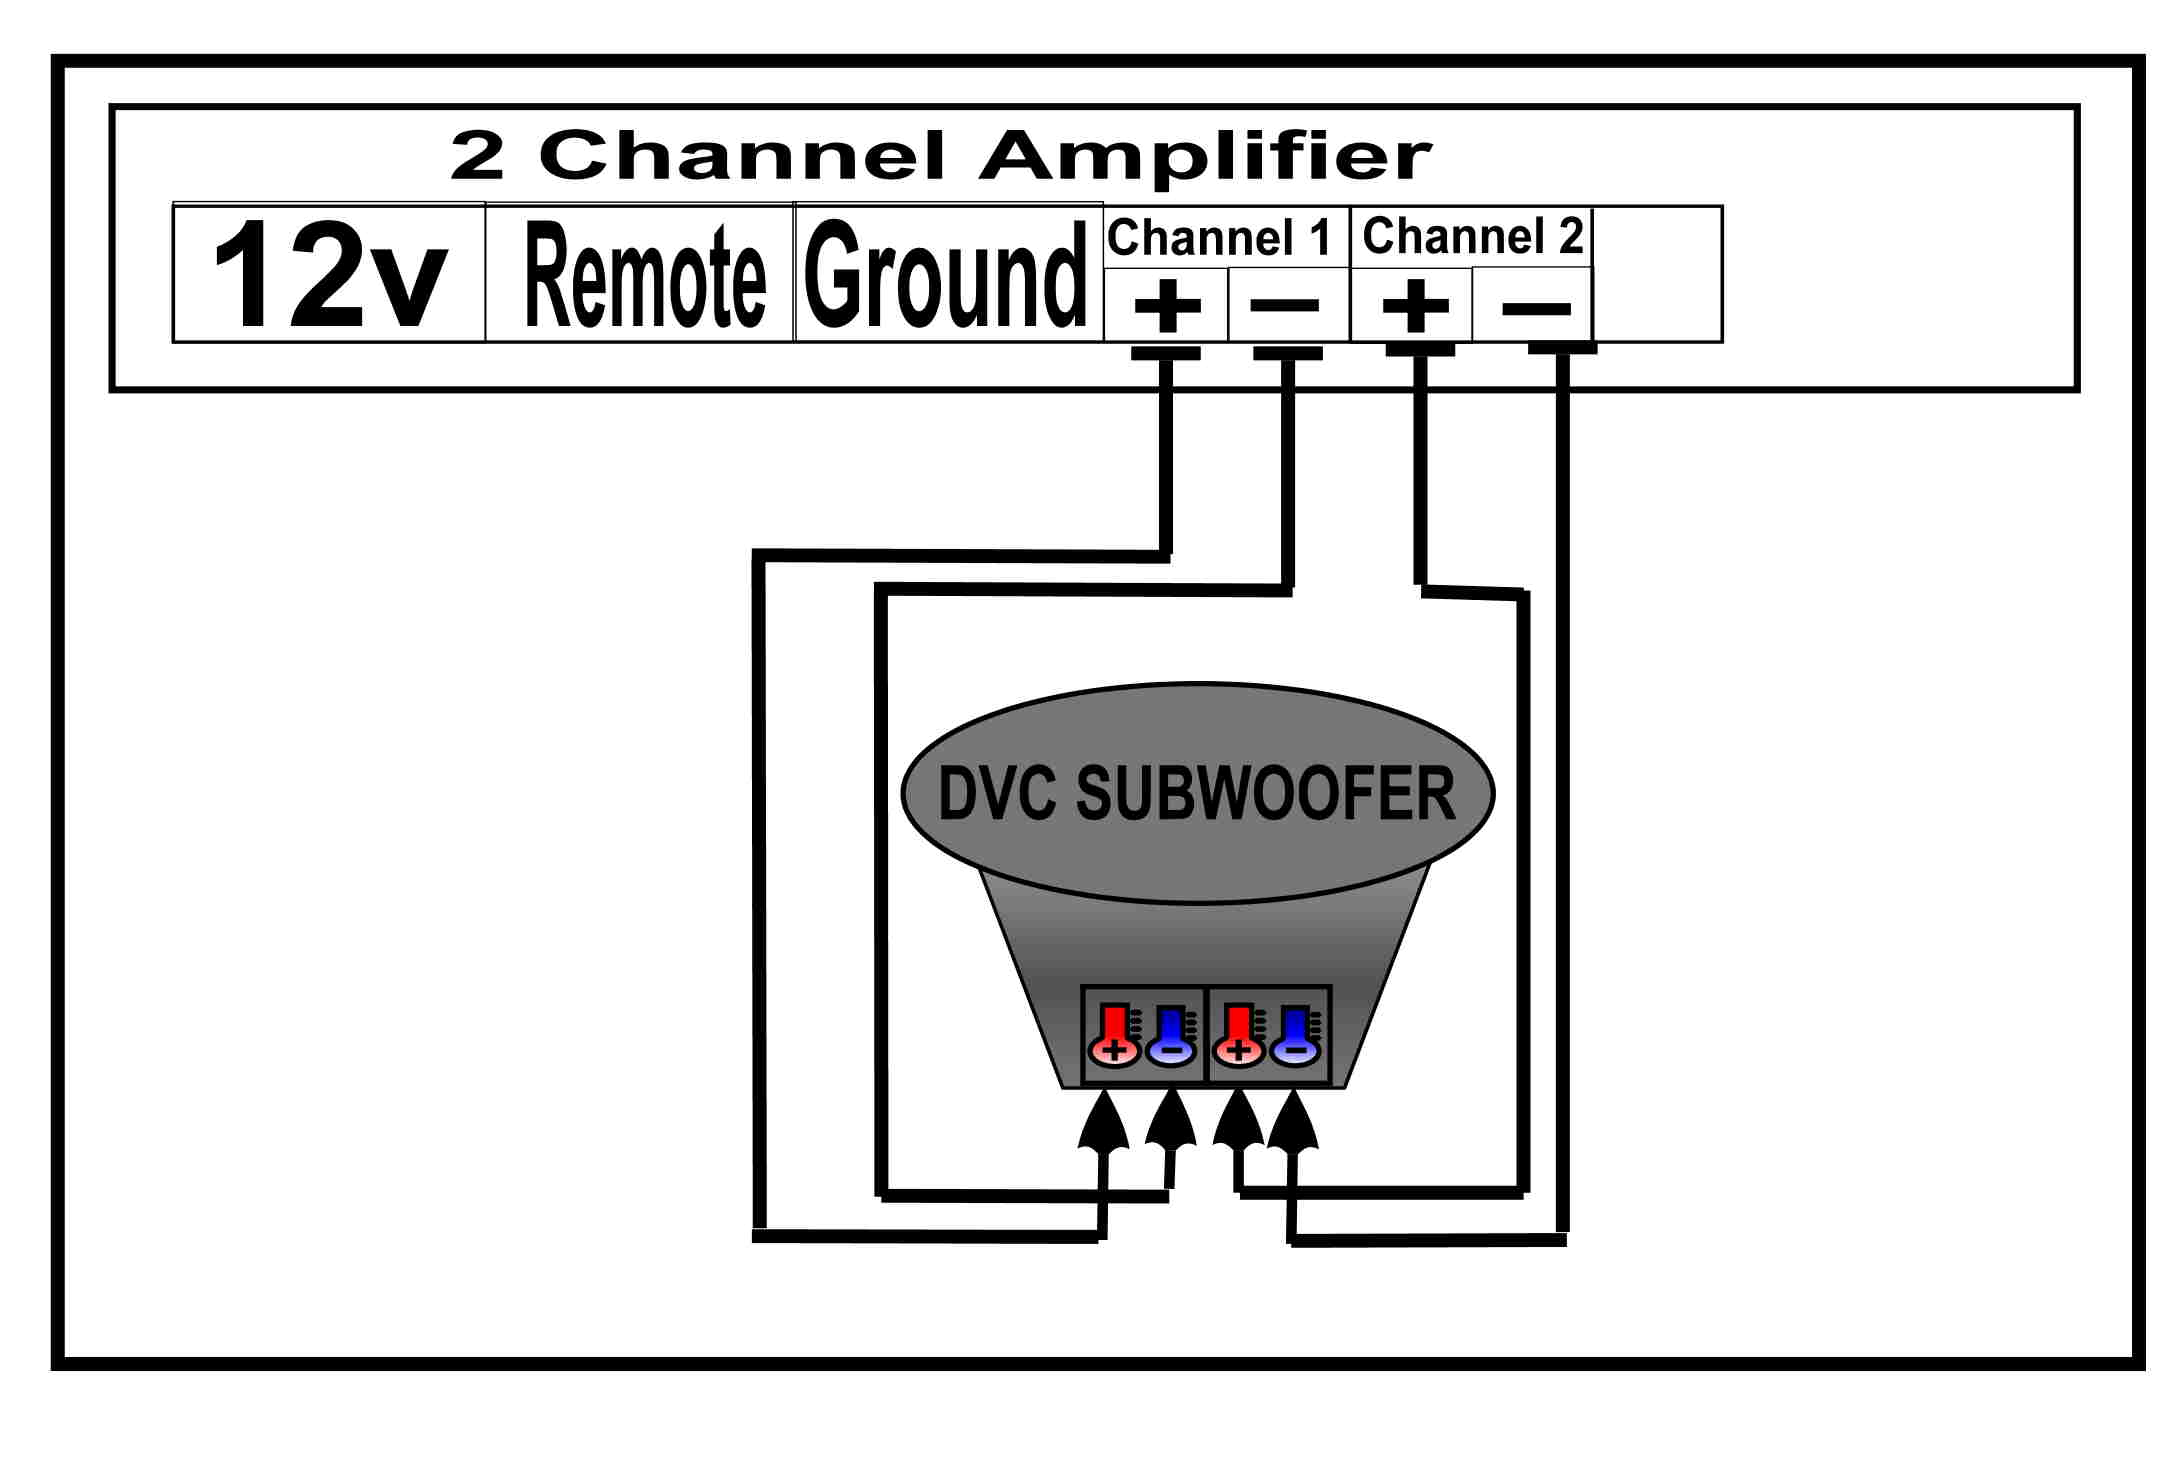 DVC to 2 Channel Amplifier help with wiring my audiobahn aw 1200 q and spl 460 phantom amplifier audiobahn aw1200q wiring diagram at virtualis.co